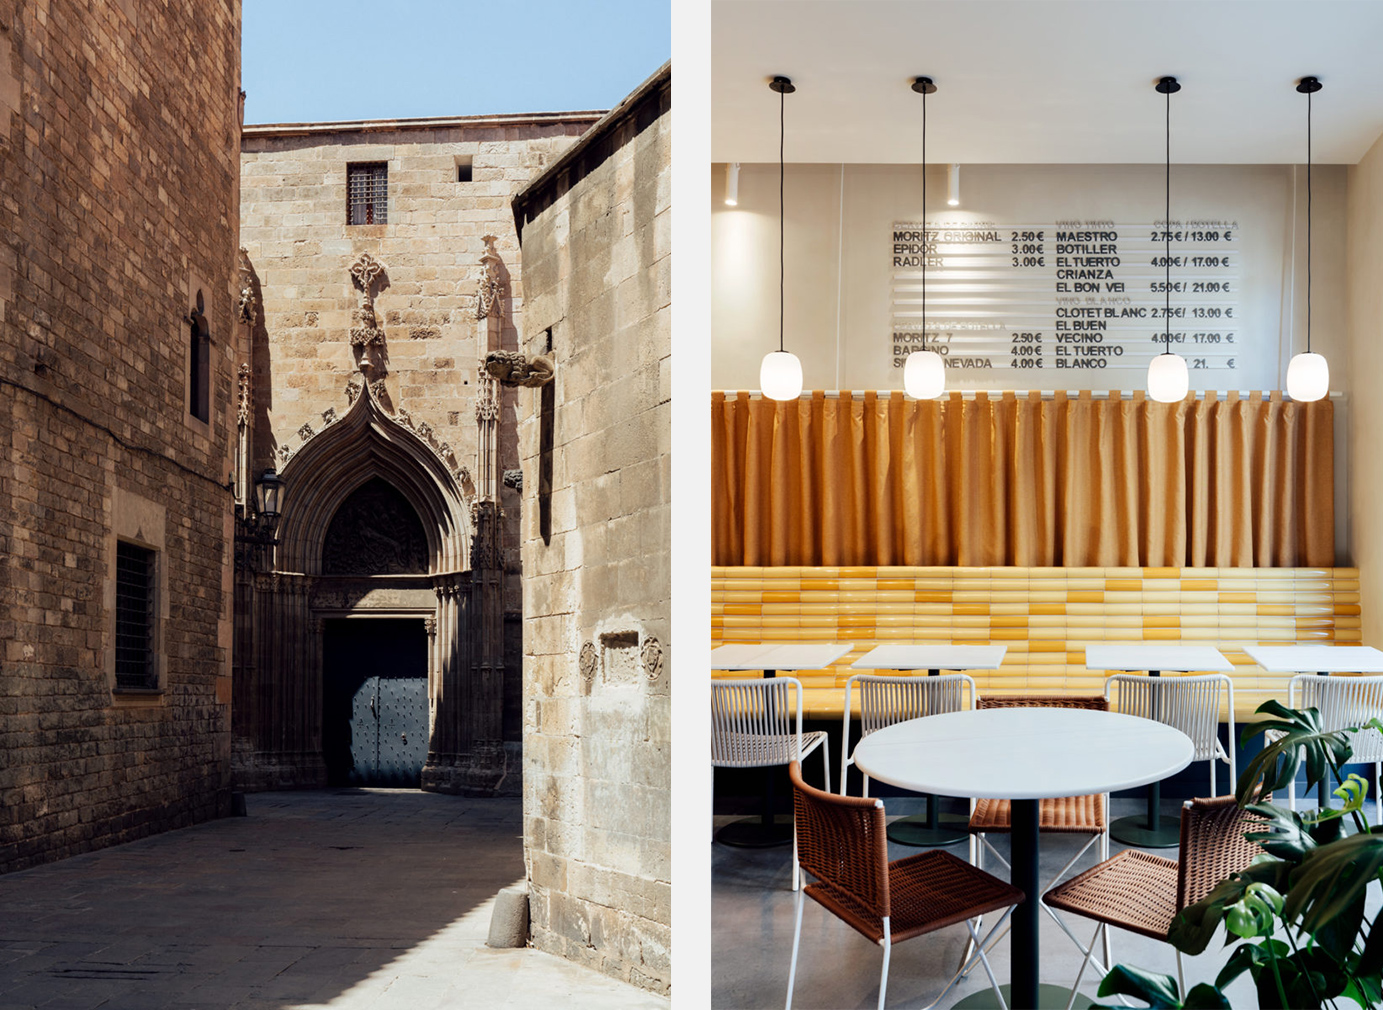 Barcelona's Bunsen restaurant designed by Mesura